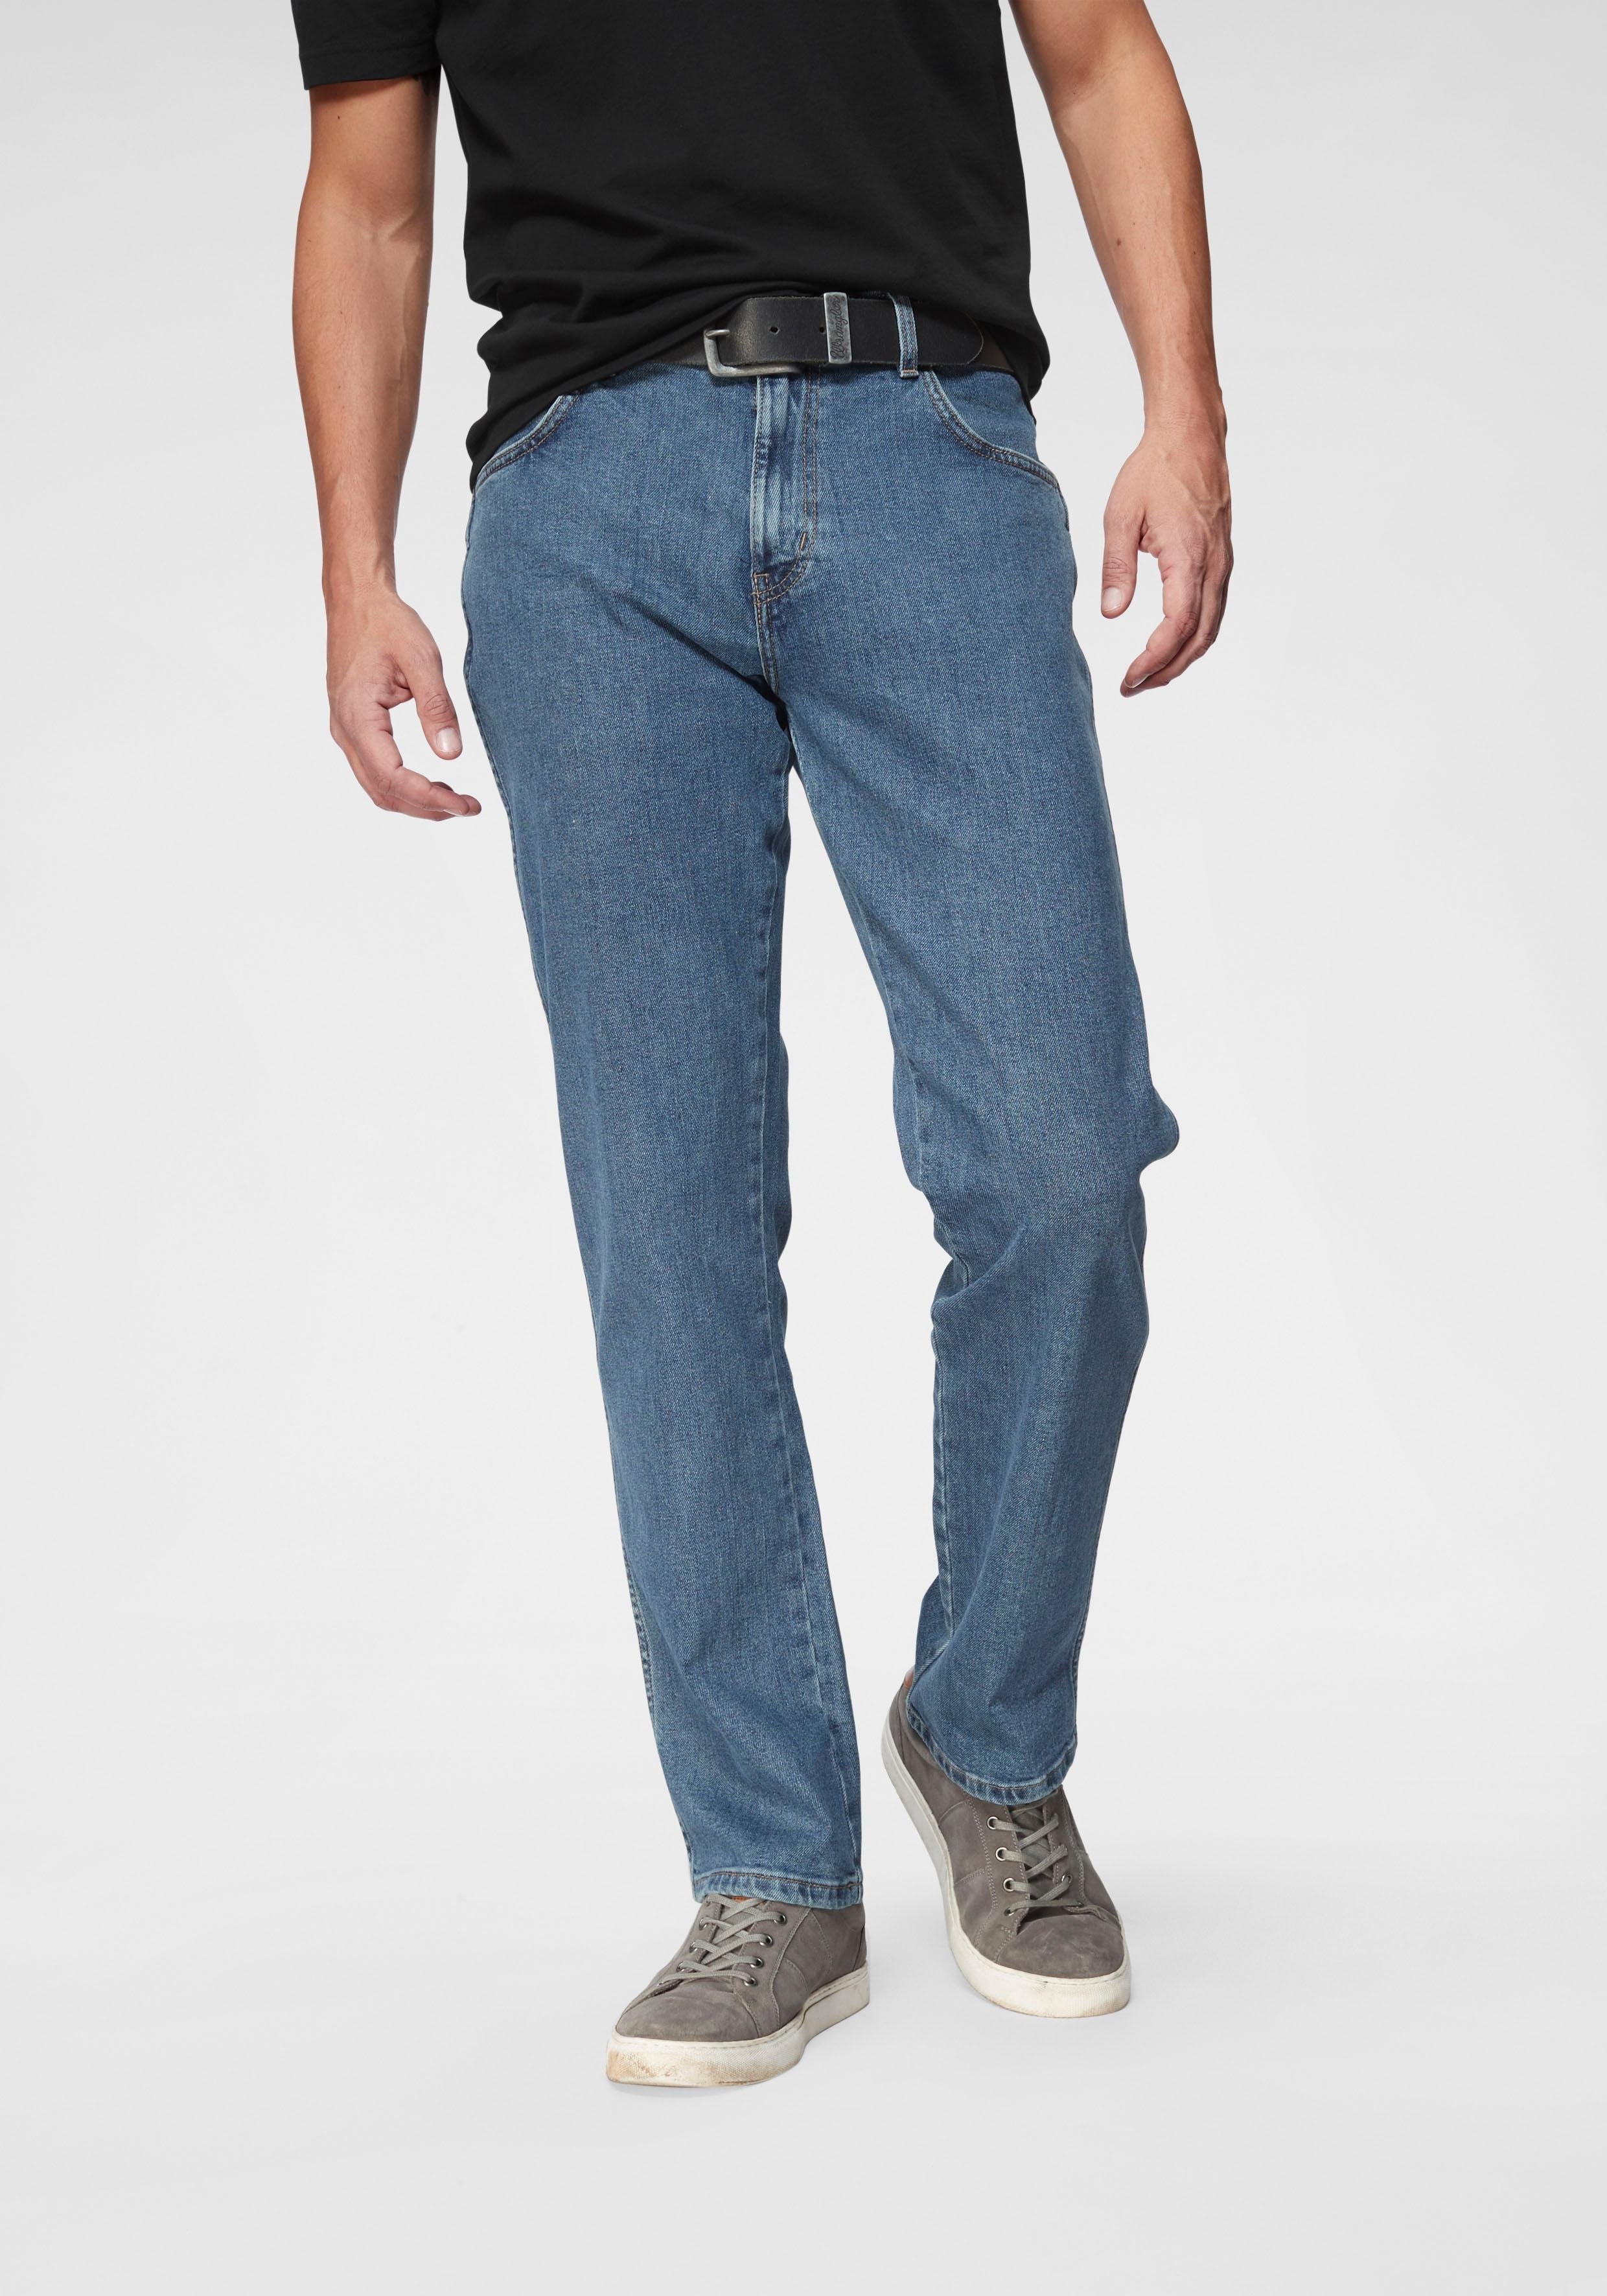 ec8ac3cbca80cf ... Bruno Banani slim-fitjeans »Jimmy (stretch)«, Regular jeans, WRANGLER,  stretch, Pioneer Authentic Jeans straight-jeans »RON«, Stretchjeans,  Arizona, ...